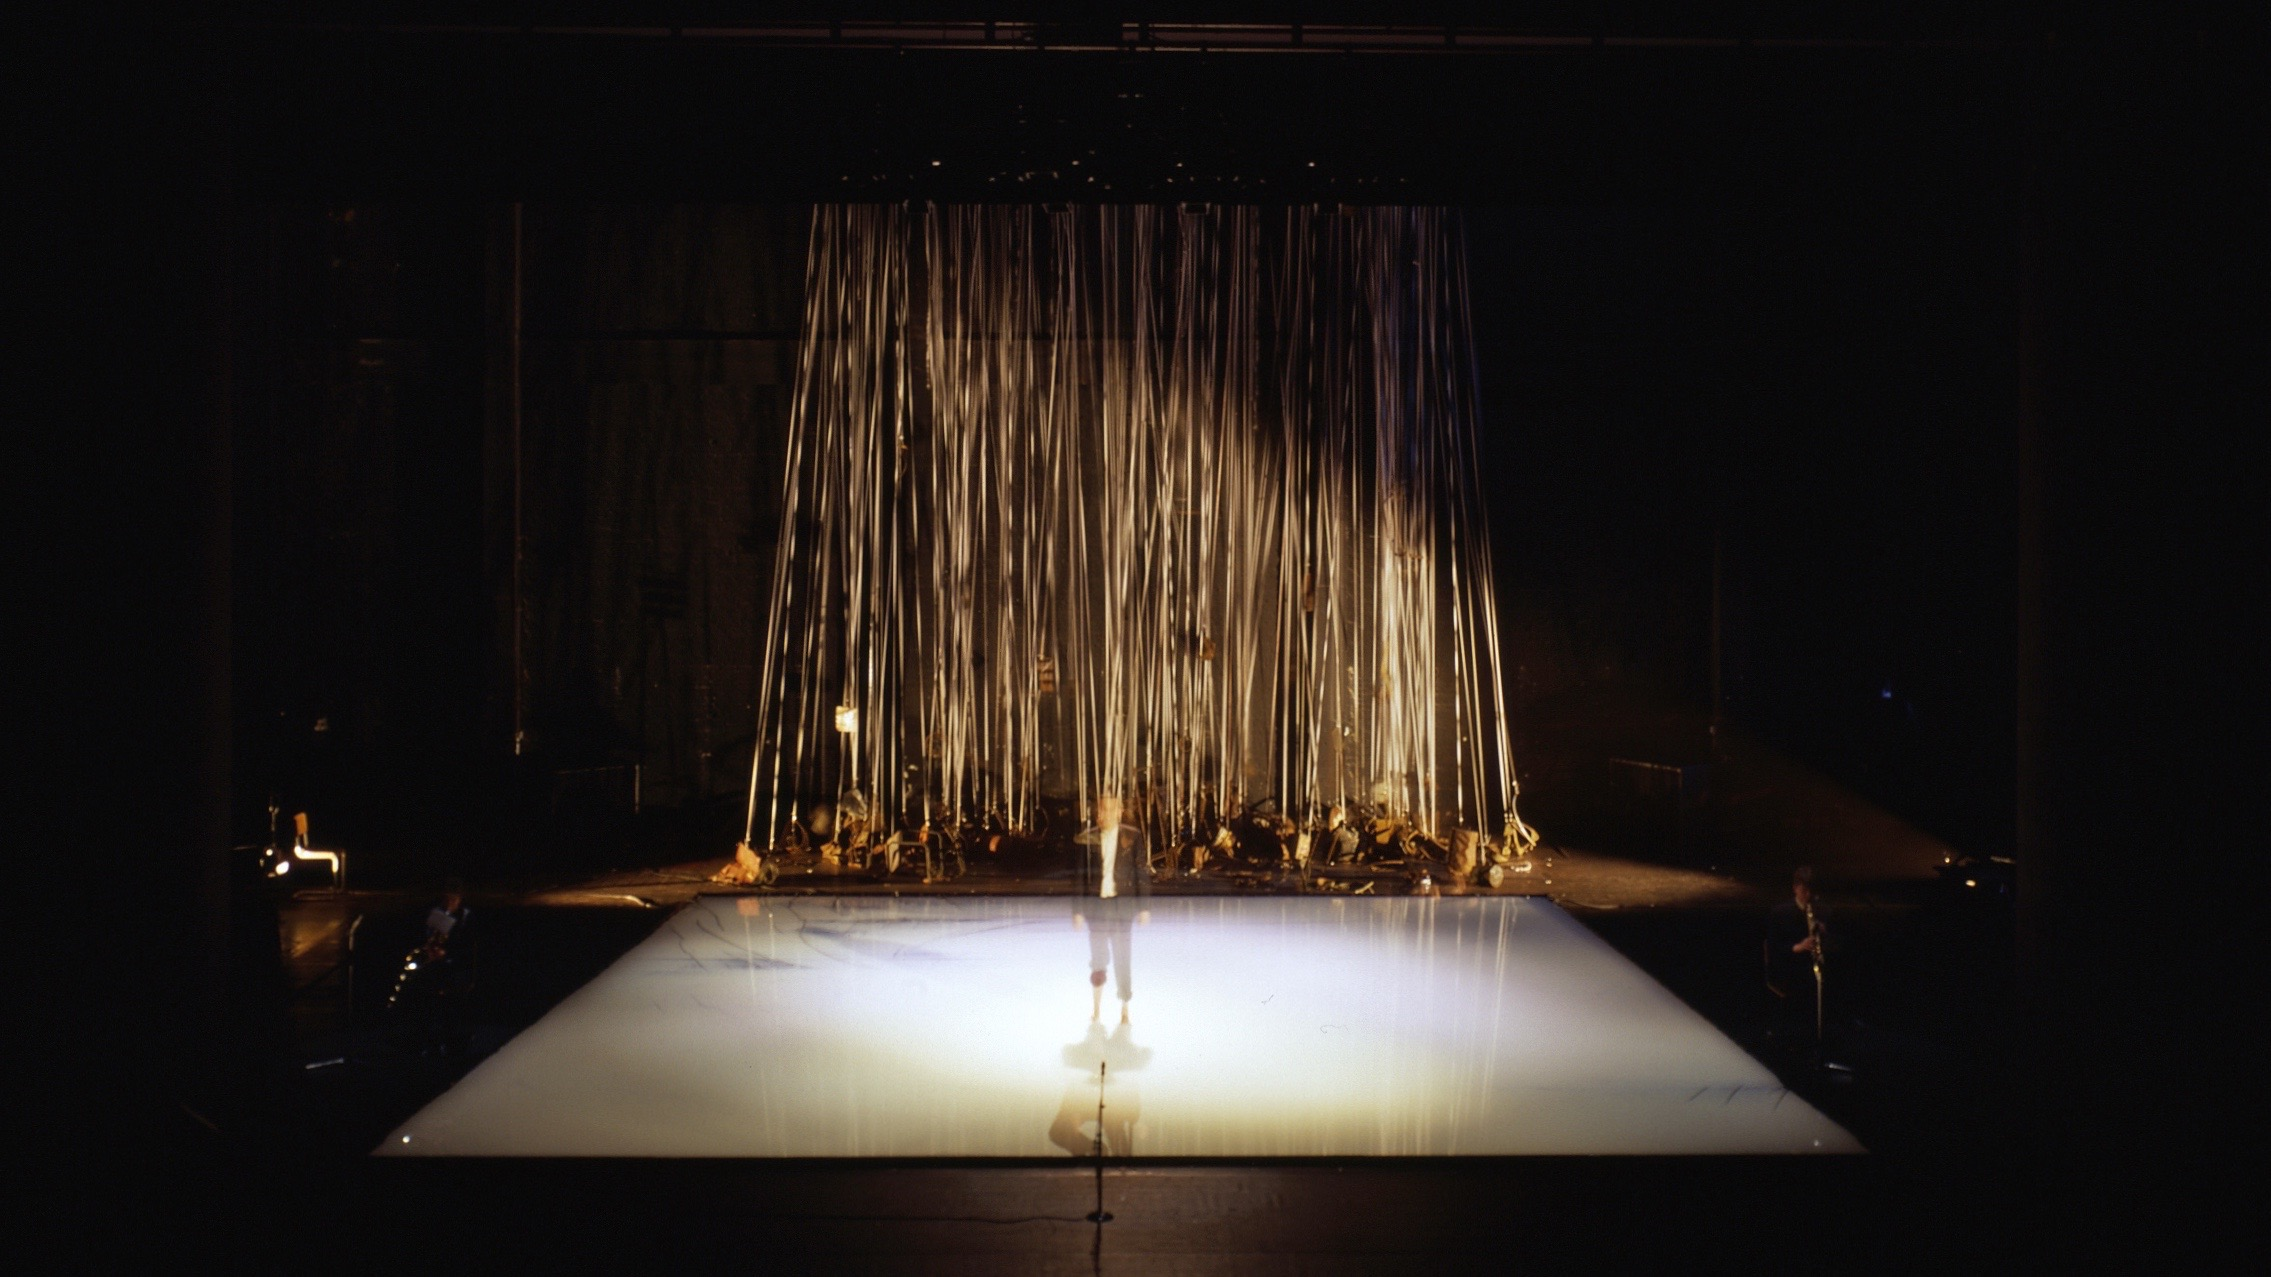 Trudo Engels (& Blindman). It's Raining Tools/Momentum, 1992, 4 saxes, 400 liters of milk, 1 ton of scrap, 3 km of elastic, lesson 23, and the weather report of December 20. Installation view at Aeronef, Lille, France